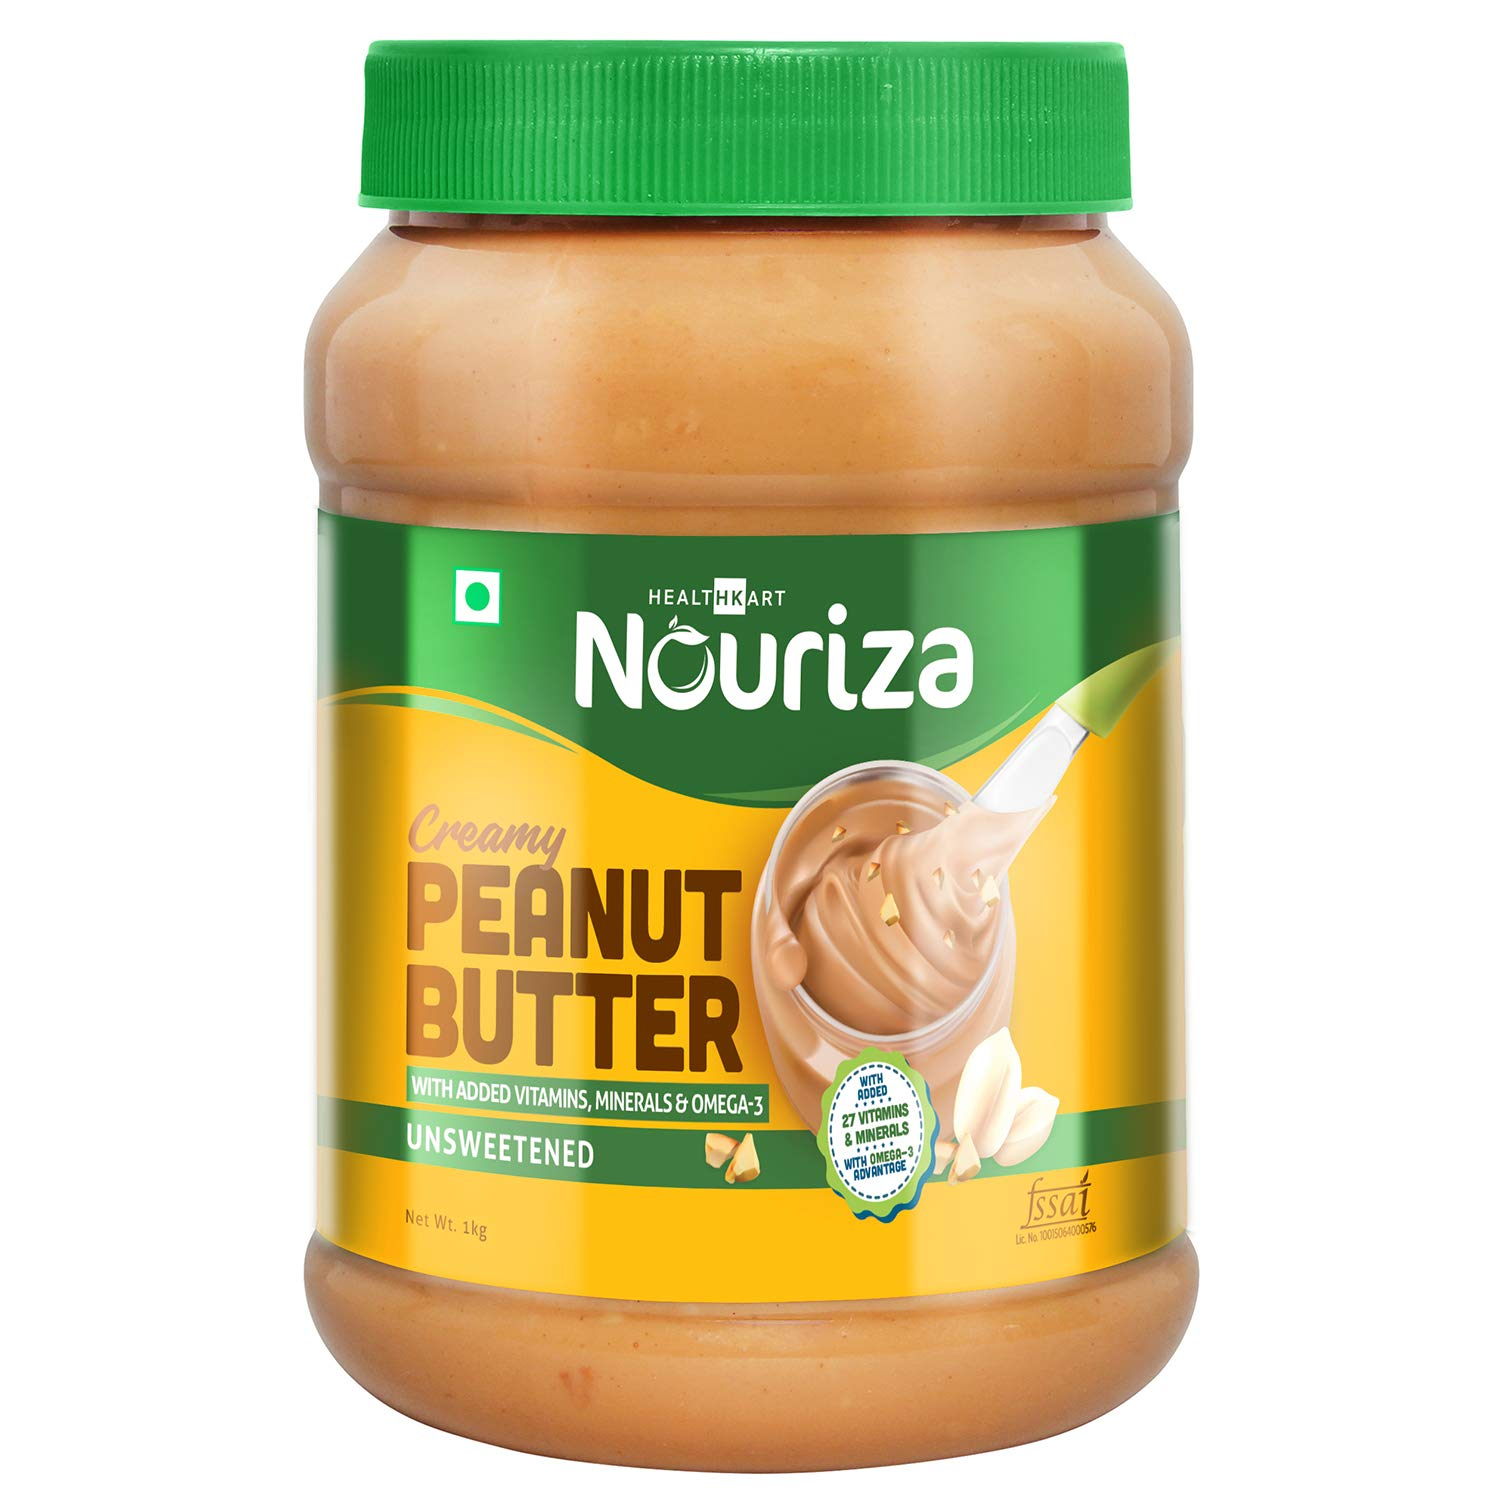 3. Nouriza Peanut Butter Fortified with Vitamins & Minerals Creamy